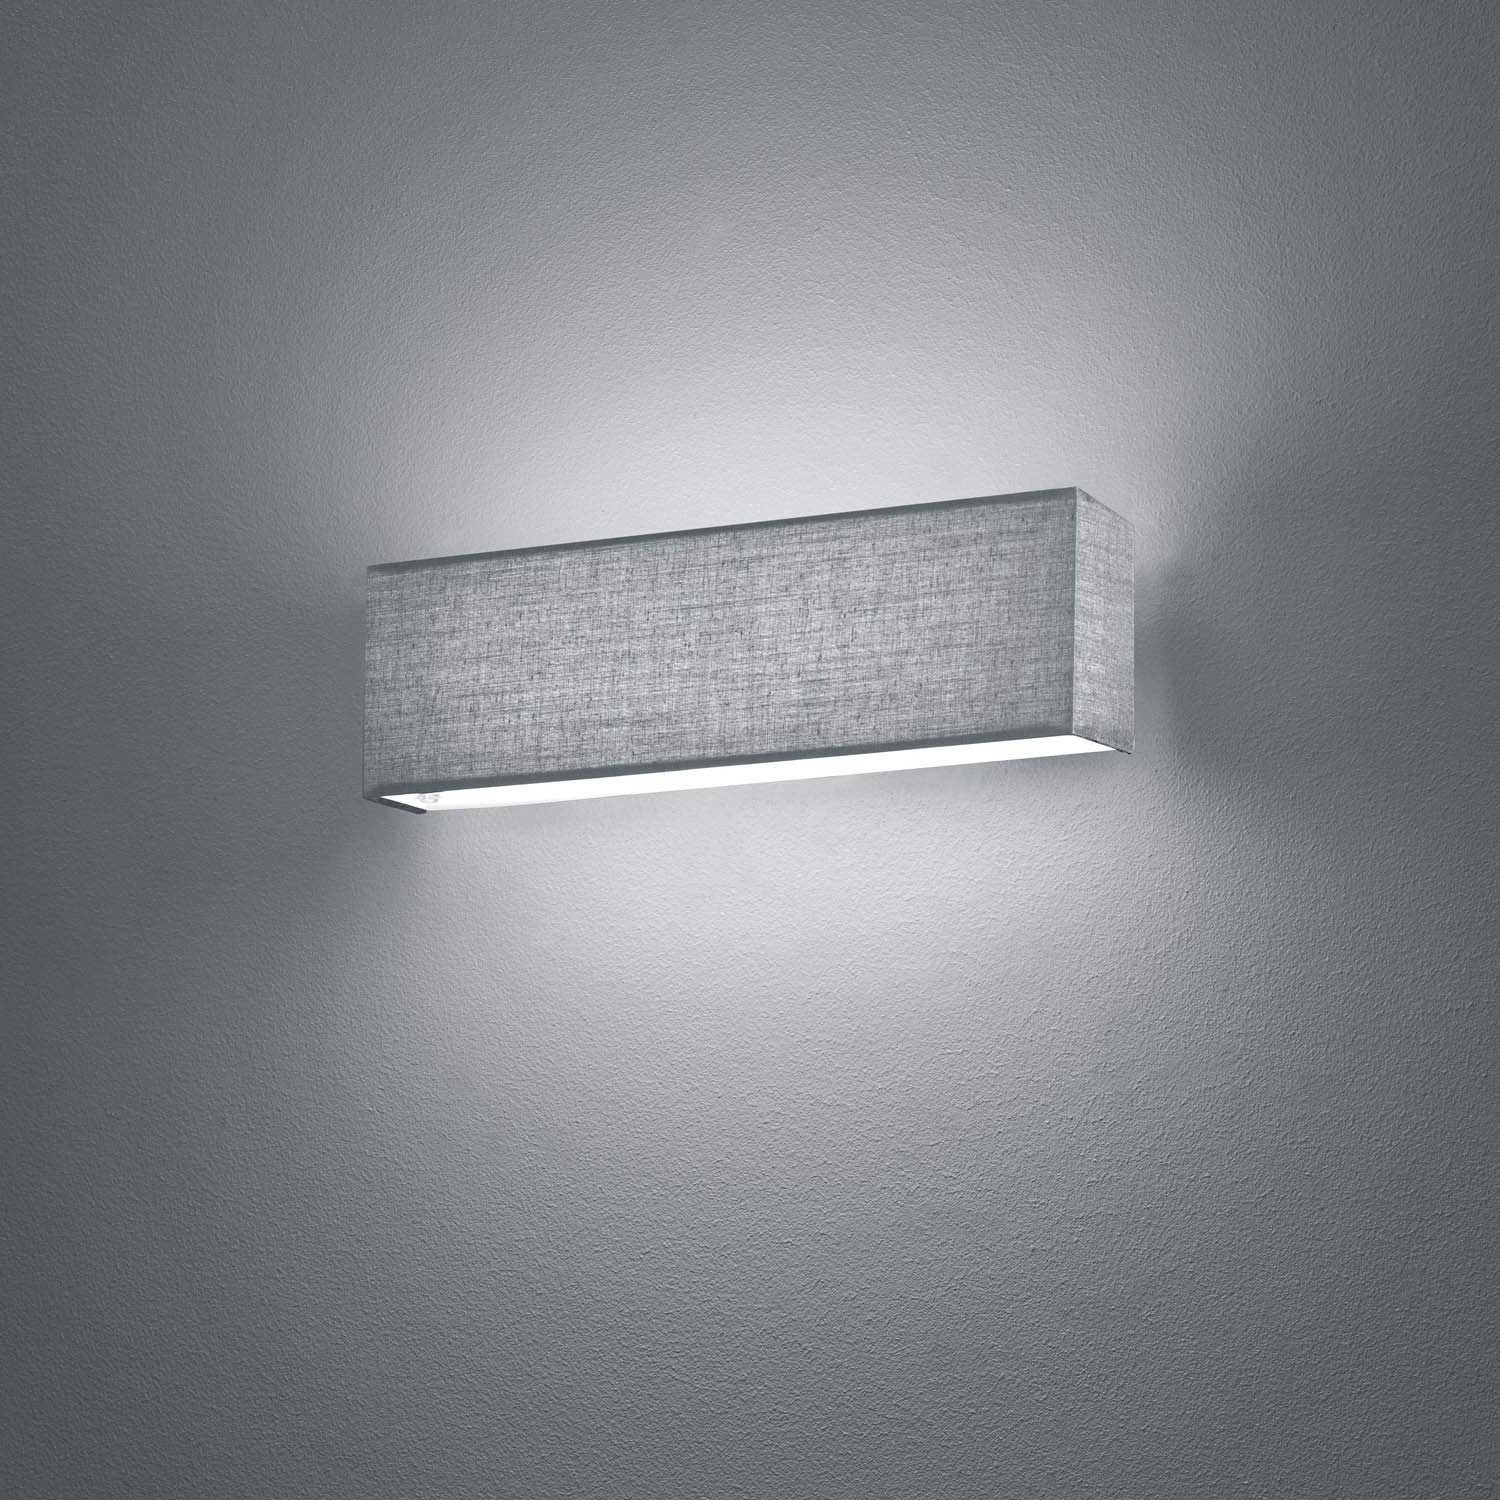 Aplique de pared led carlo 6w gris for Apliques de pared exterior led